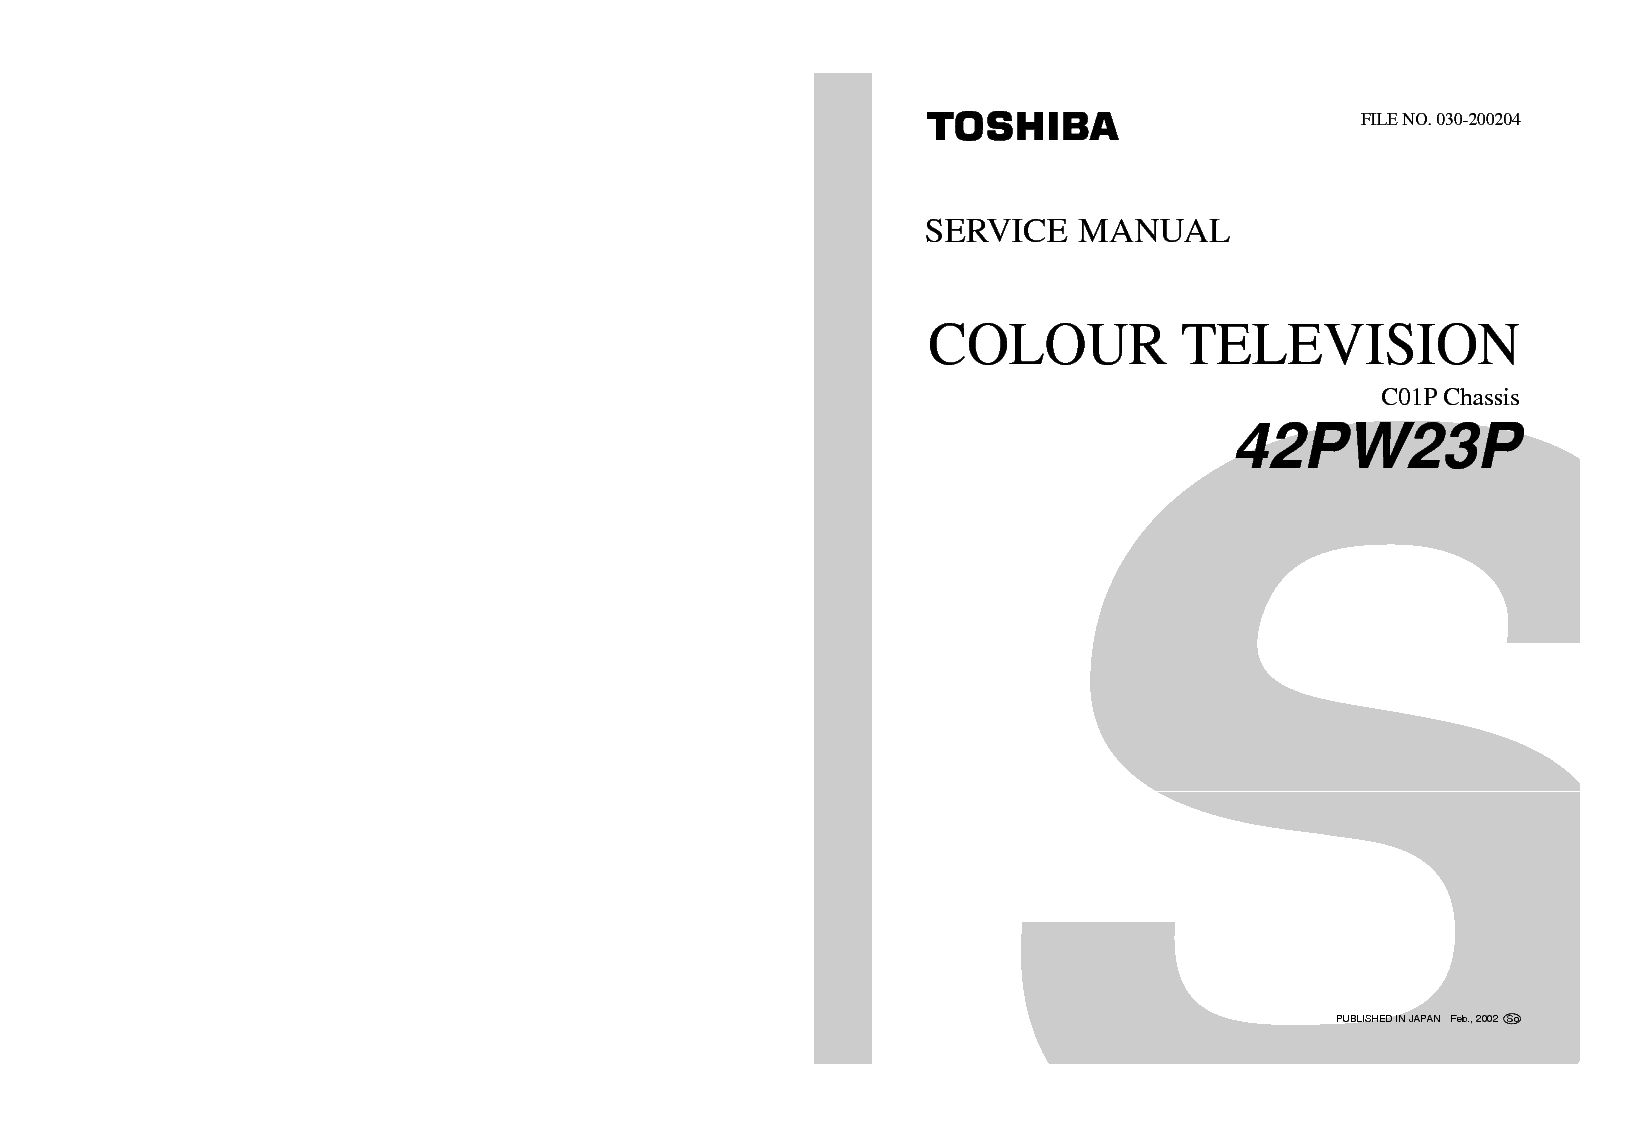 TOSHIBA 42PW23P CHASSIS C01P SM Service Manual download